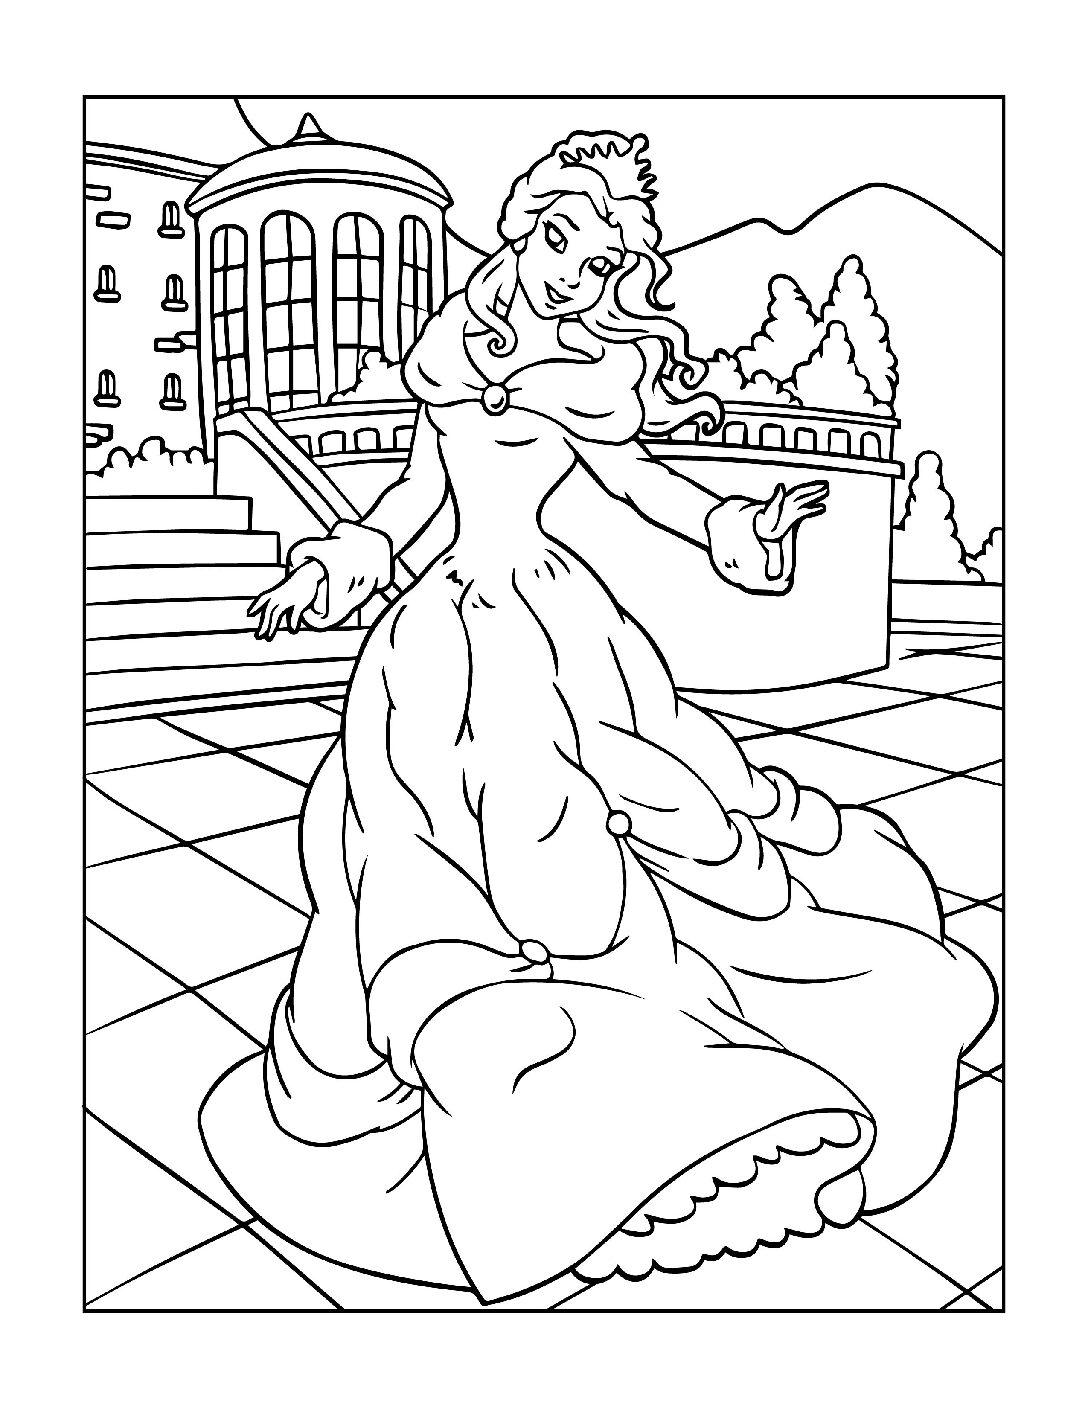 Coloring-Pages-Princess-13-01-pdf Free Printable Princesses Colouring Pages